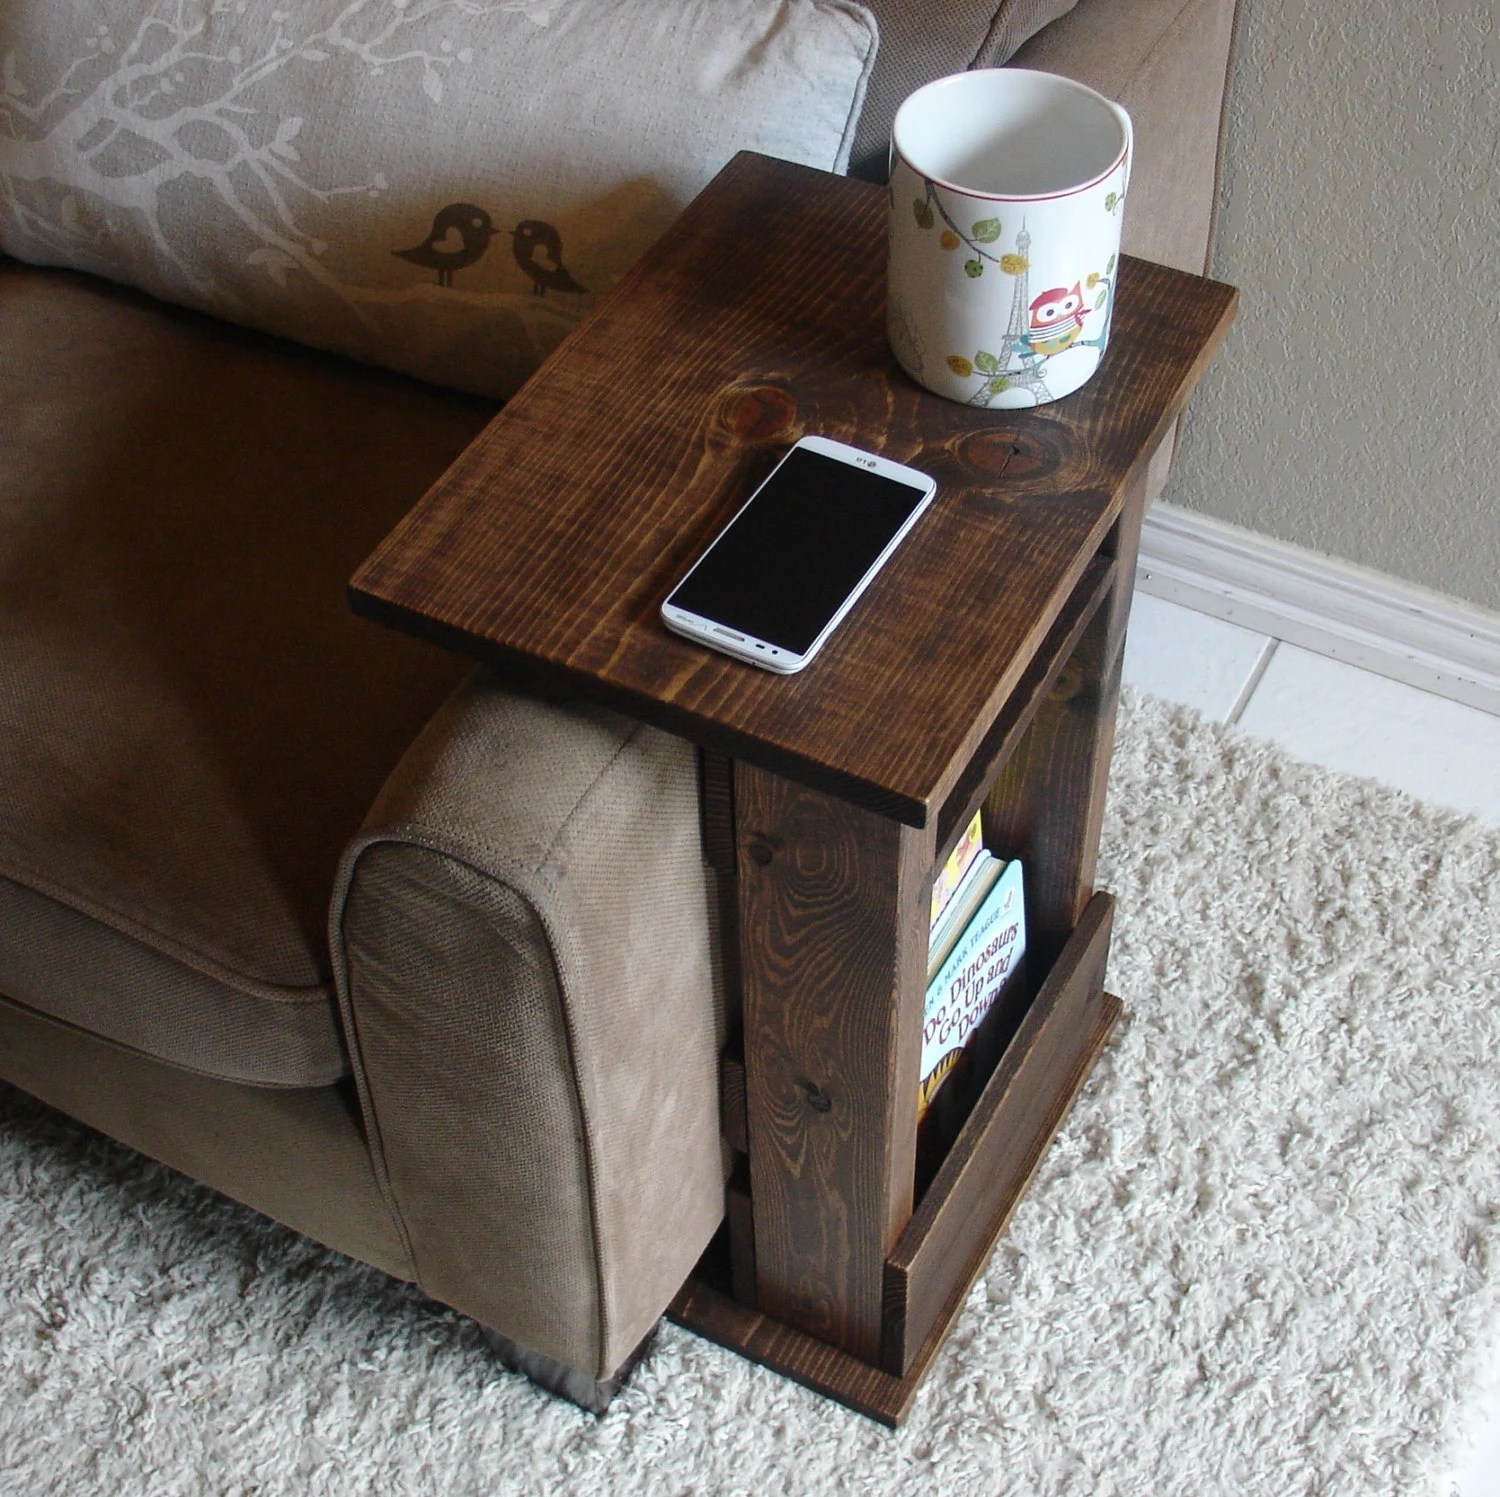 couch sofa armrest wrap tray table with side storage slot vintage danish tan leather chair arm rest stand ii shelf and